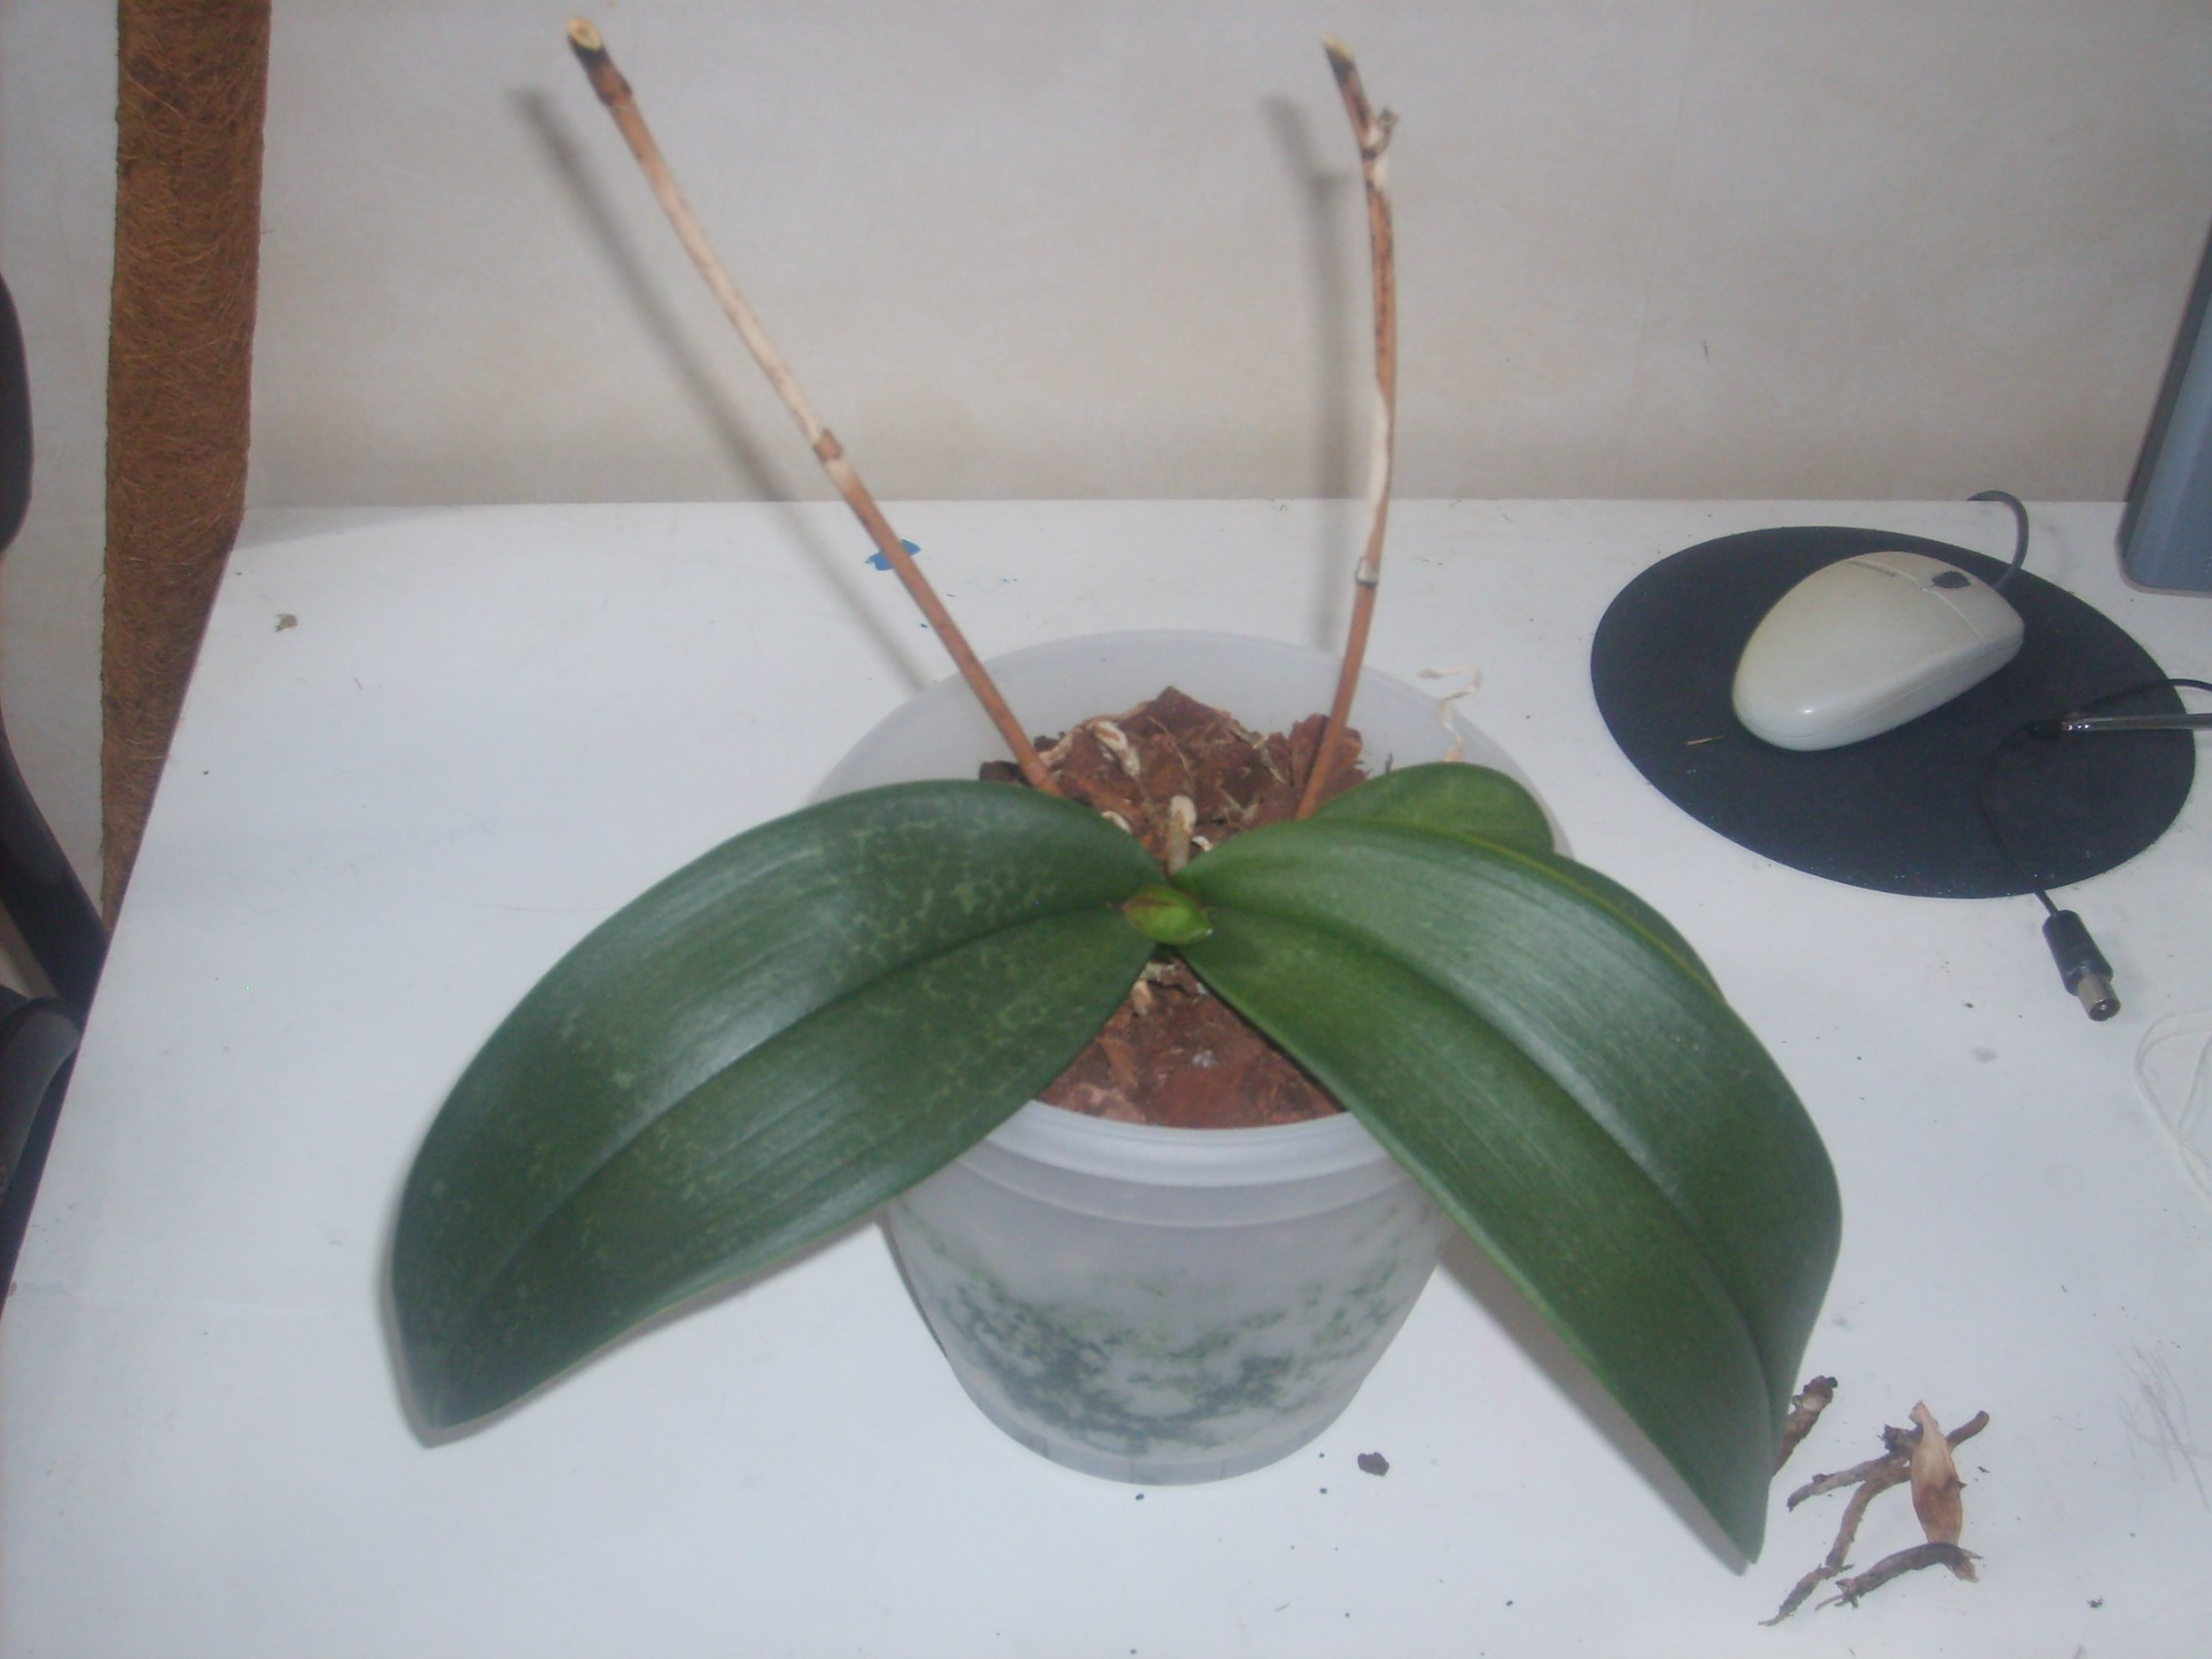 Comment faire refleurir une orchide orchide cambria en pot comment faire refleurir mes - Comment arroser une orchidee ...